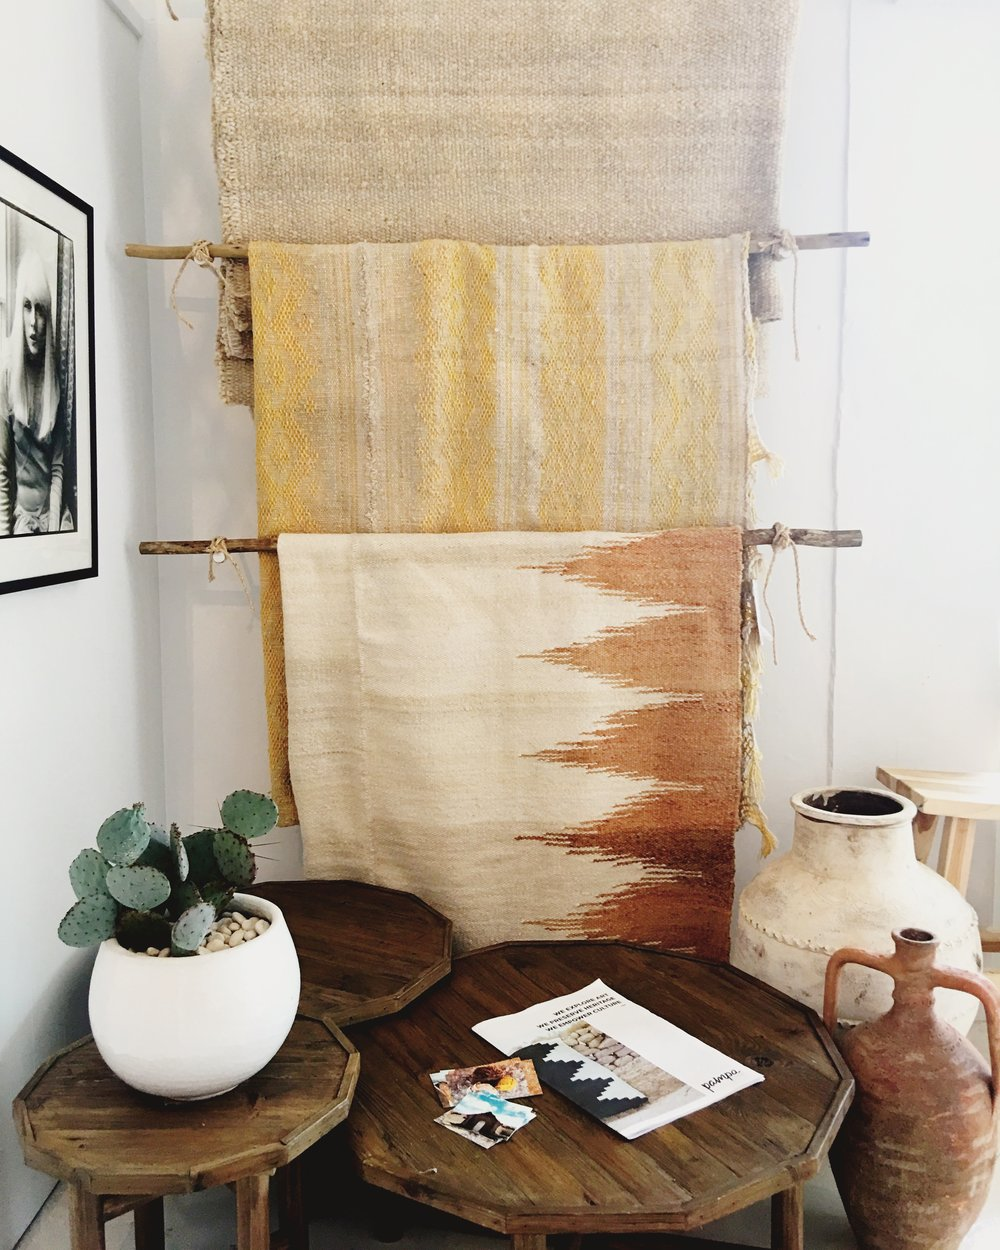 Rugs by Pampa and furniture by Bisque are part of the Commune edit.